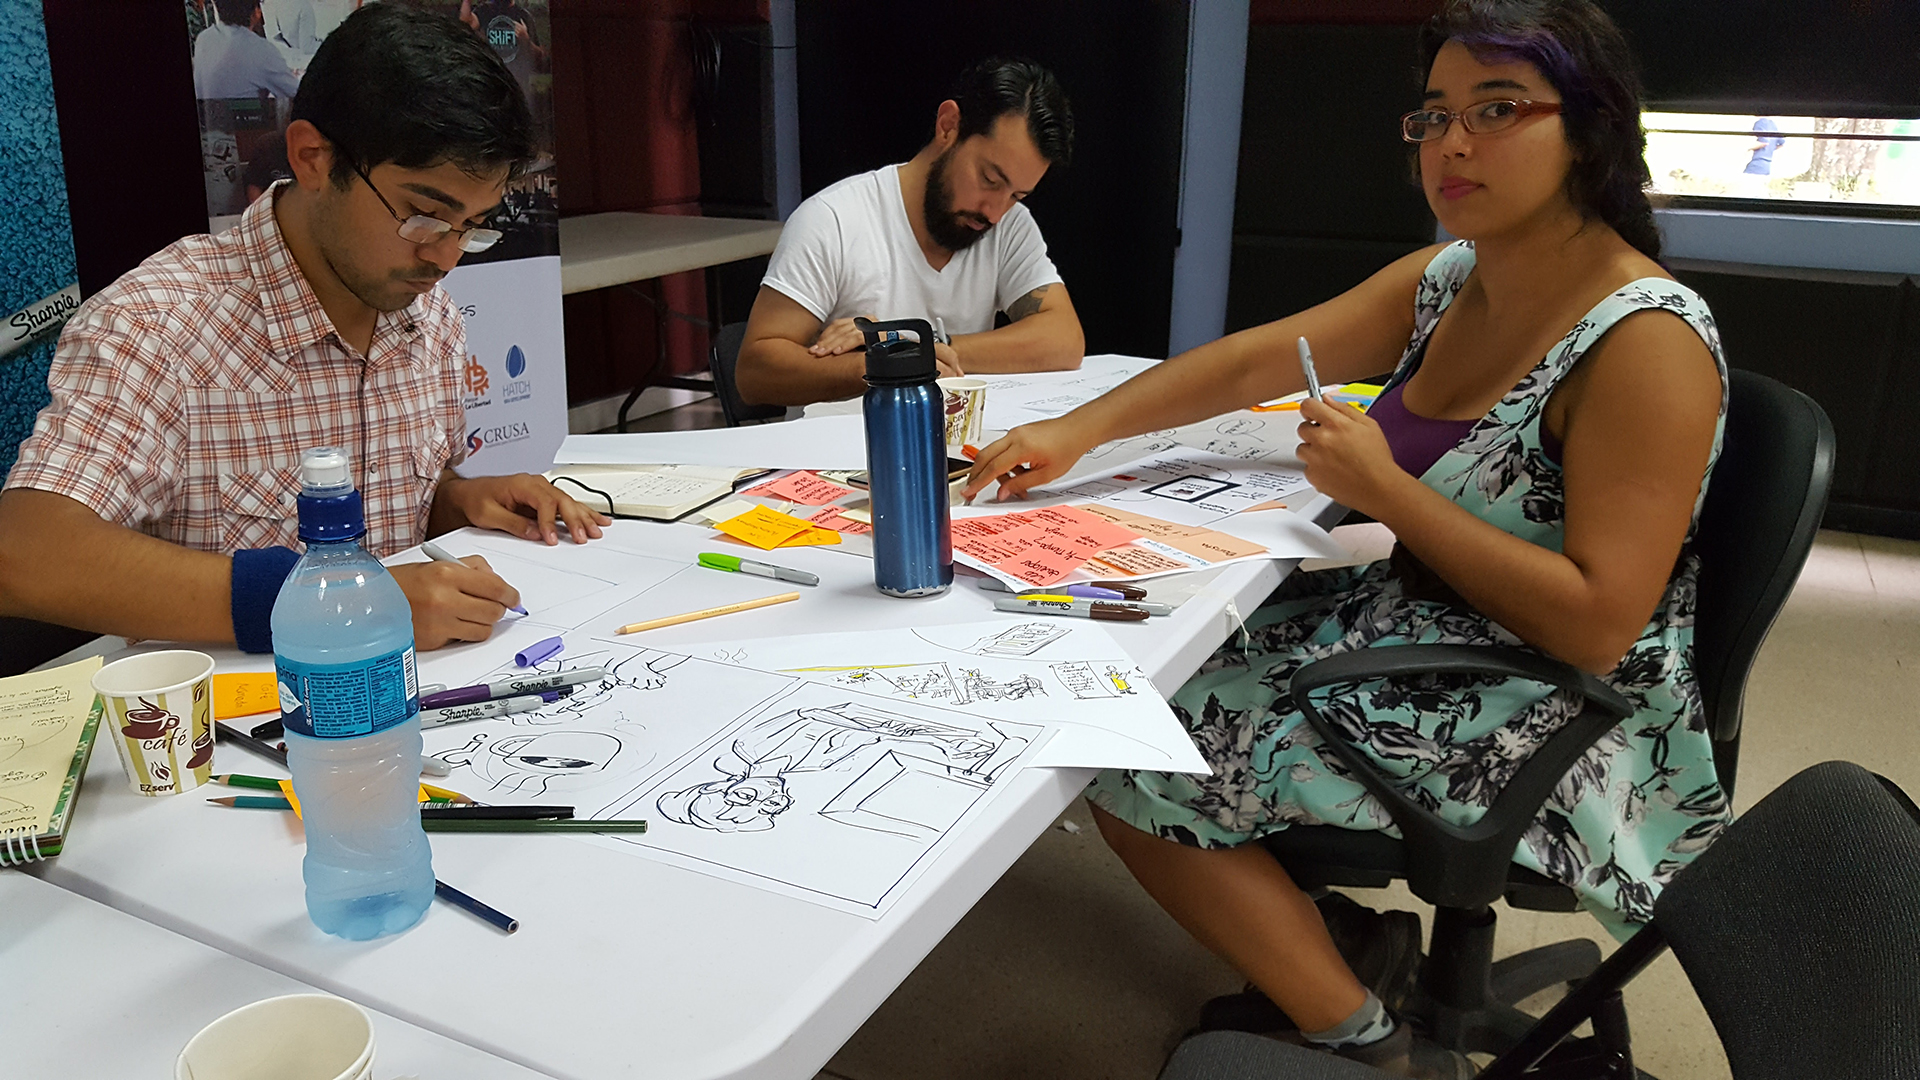 "Partner: Hatch/Sketching Lab Date & Location: October 26-28, 2017 / La Libertad Park, San Jose, Costa Rica Participants: Around 20 multidisciplinary group of college students in various design fields / professional designers: industrial, graphic, architecture/ educators/government workers / social workers __ ages ranged from early 20s-60s Overview: Partnering with Hatch/Sketching Lab in San Jose Costa Rica, Aether co-hosted a 3-day Lab that focused on visual communication and the creative thinking process. The intent was to help take an idea to reality following innovative methodologies in a very hands-on, activity-driven approach. The Lab's primary objective was to promote and foster entrepreneurship and creativity of the participants to develop and create successful businesses from innovative ideas. Targeted for the entrepreneurs, business managers, designers, architects, craftsmen, creatives, students and professionals in business and all those interested in learning new ways to communicate their innovative ideas quickly and effectively. Topic: The Story of Coffee Kickoff: Sketch Aerobics: basic exercises. Lose fear and forget frustrations, learn to communicate your innovative concepts with visualization techniques. (exercises and sketching with music) Presentation: (José Gamboa) Basic drawing techniques, Mind Mapping techniques (organization of concepts and ideas using word association strategies). Design process: problem, research, concept, and solution. How to incorporate ""emotional design"" into your proposal or business. Knowing ourselves better, the participants will form teams to perform basic exercises. Each group will have the opportunity to develop a business idea, in digital or a physical concept Presentation: (Owen Foster) Following the ""Lean Startup"" methodology, ""Pencil to prototype"": a practical workshop that visualizes the complexity of the creative process, divides it into smaller, more manageable tasks and allows participants to accept the failure from unexpected results. It teaches you how to make prototypes of your idea quickly, evaluate them and reintroduce the concepts to the client or to the market. Start of the project: Identify the problem / opportunity Investigation Explanation of methodology A, B, C, Q. Development of concepts and final presentation. Review the projects and give advice to the participants. Evaluate generated concept Development of the solution Presentation Conclusions Deliverables: The workshop offered: Basic drawing exercises (learn to communicate your innovative ideas with visualization techniques). Mind Mapping (organization of concepts and ideas using word association strategies). How to incorporate the ""emotional design"" in your proposal or business. Design process: problem, research, concept, solution. How to develop a professional network of contacts. Methodology ""Lean Startup"". Methodology ""Pencil to Prototype"". Methodology ""A, B, C, Q""."